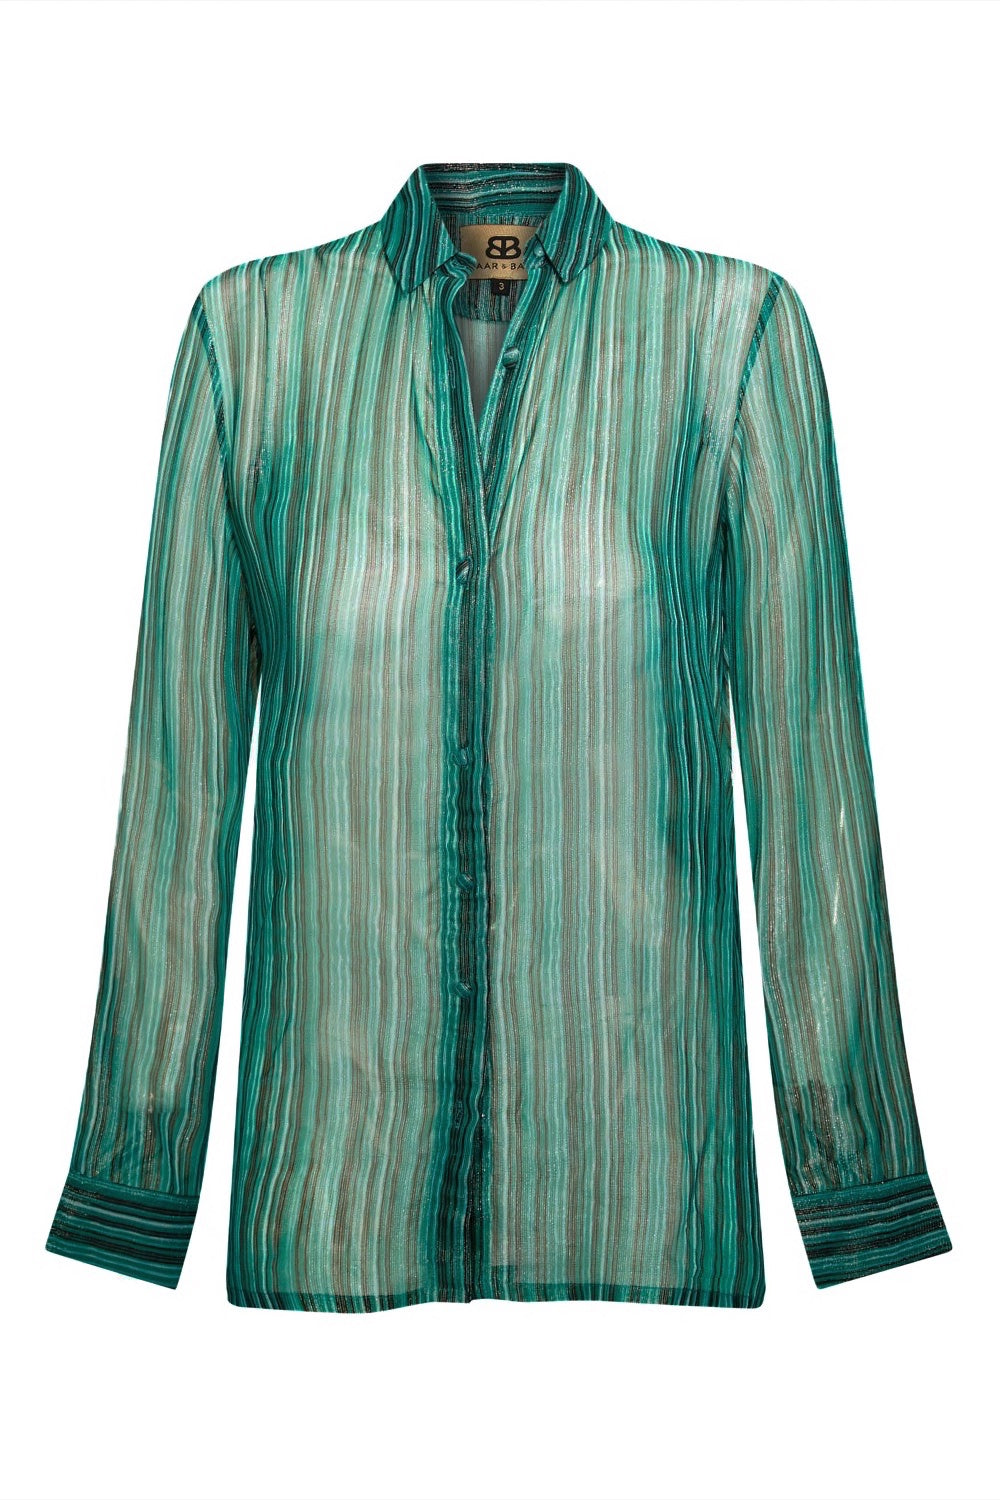 Baar and Bass - Green Stripe Lurex Willa Shirt